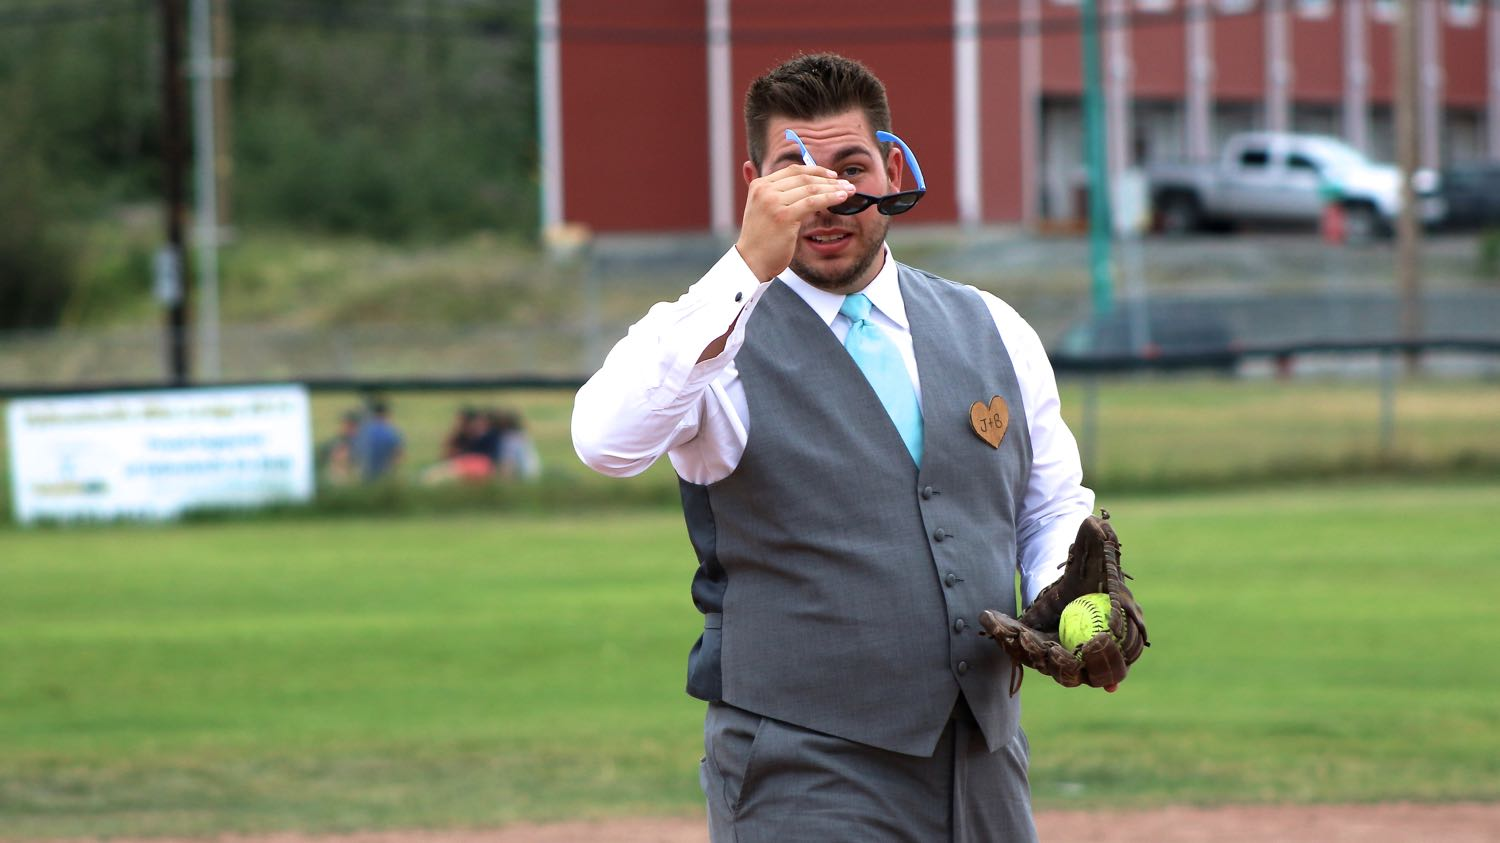 Wedding party plays softball